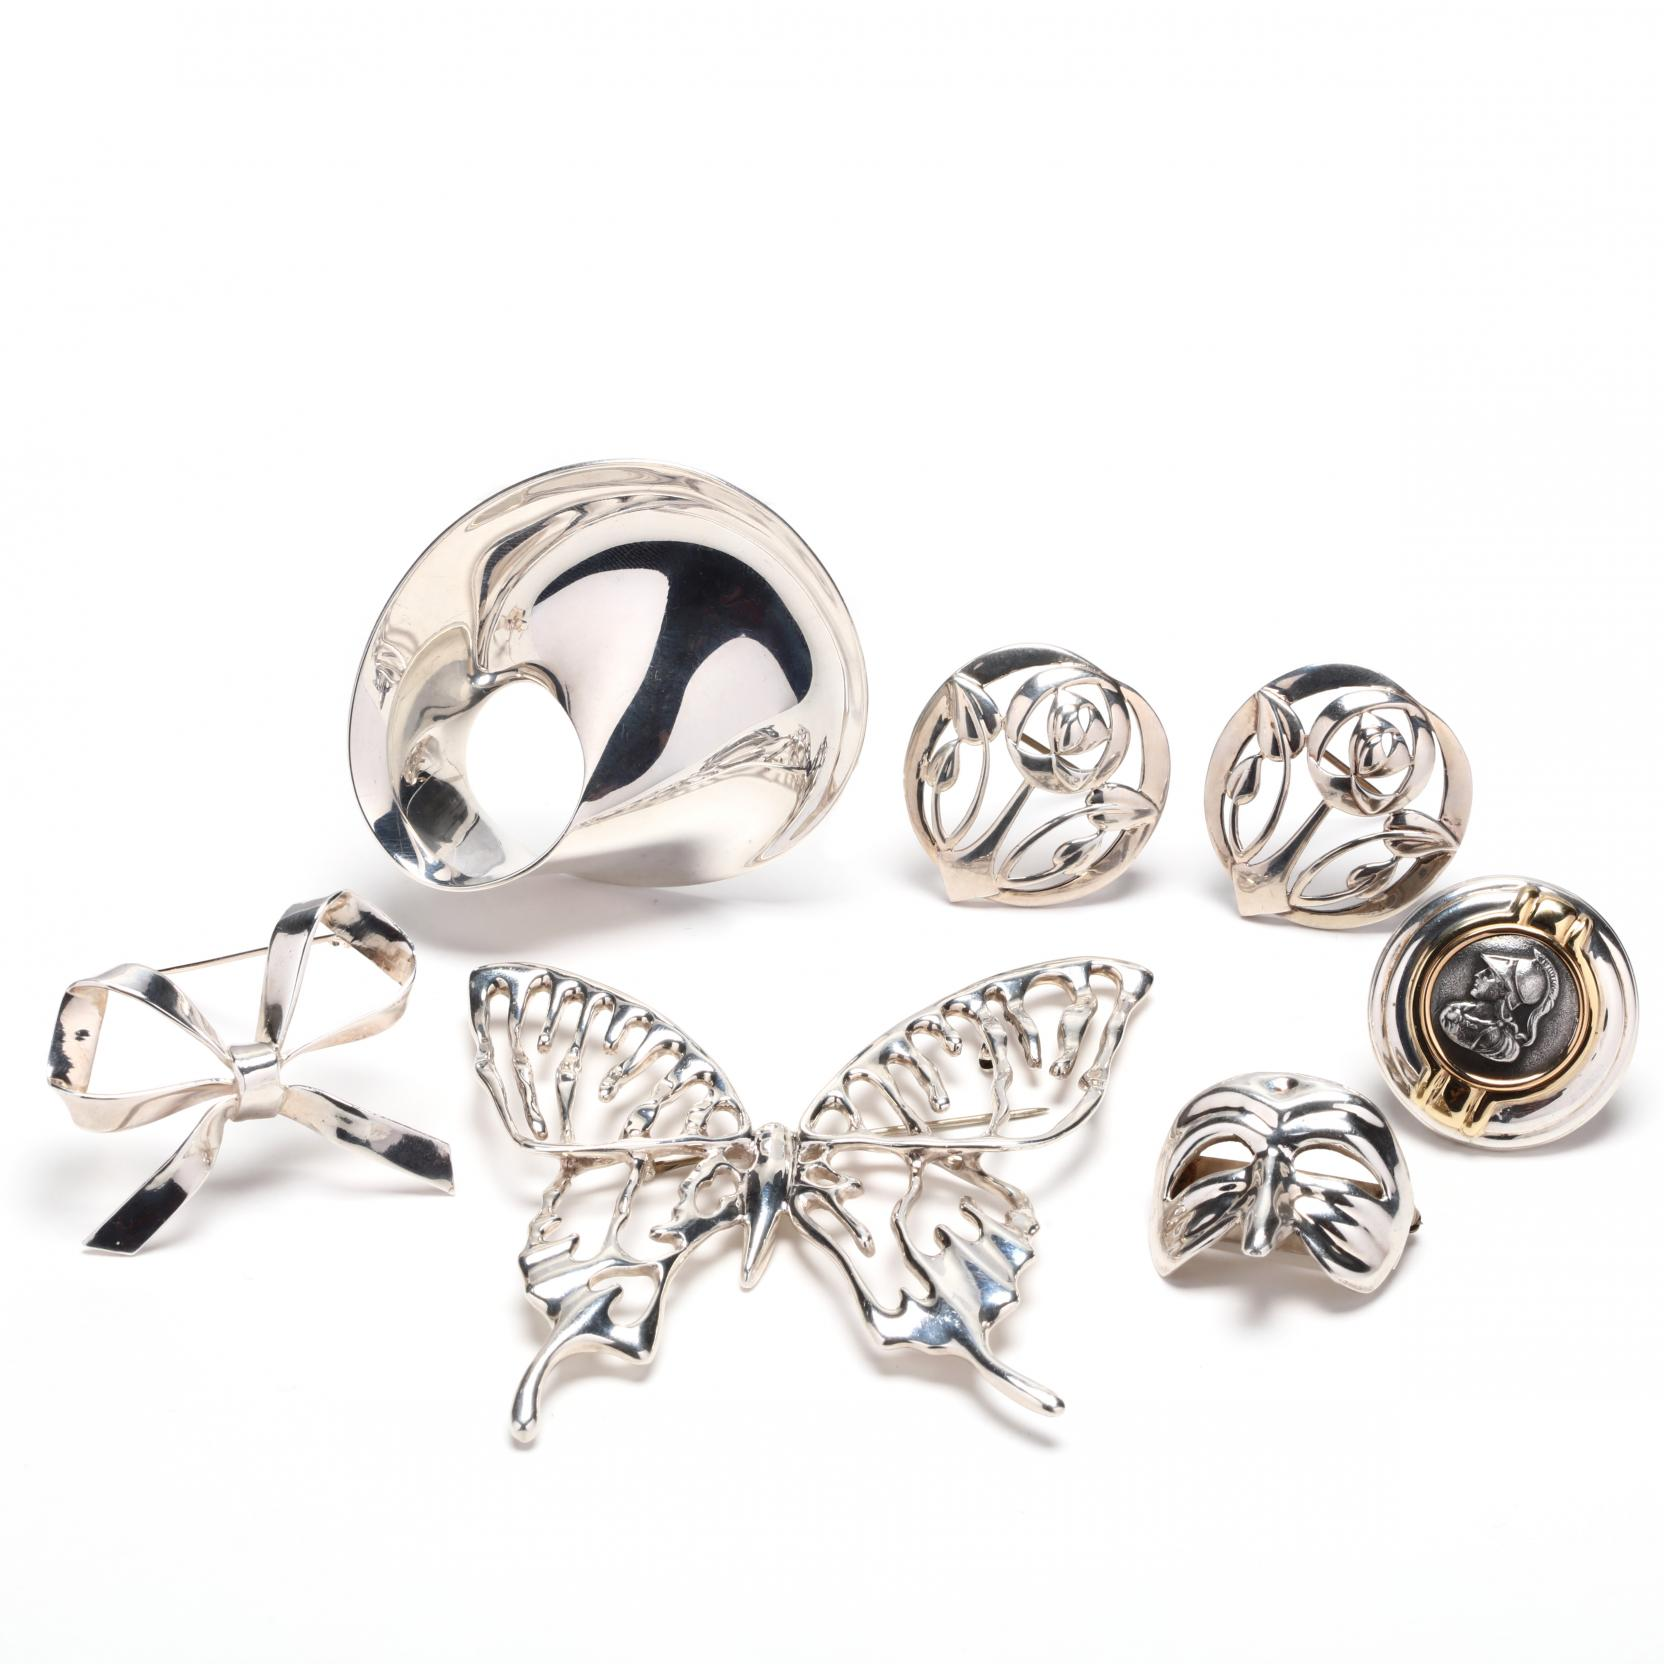 a-collection-of-fine-sterling-silver-brooches-signed